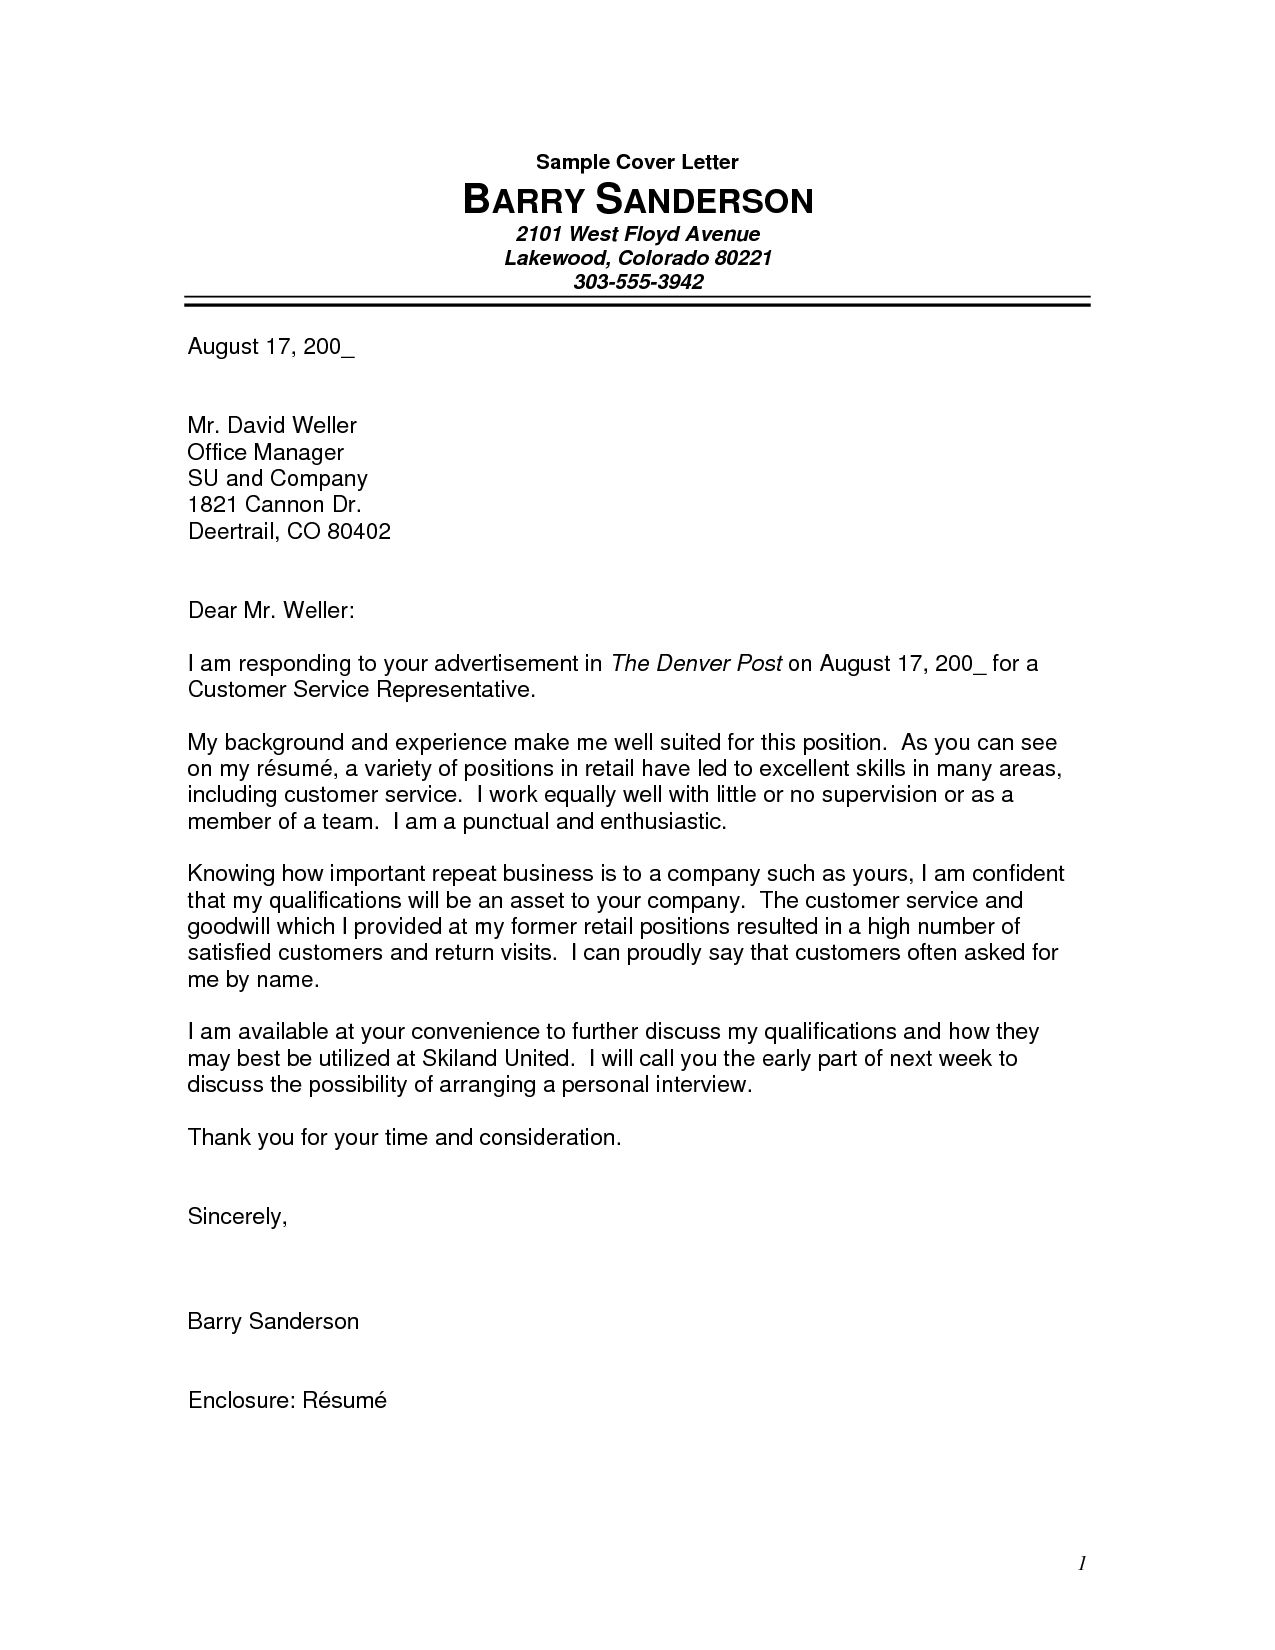 26+ No Experience Cover Letter Cover letter for resume